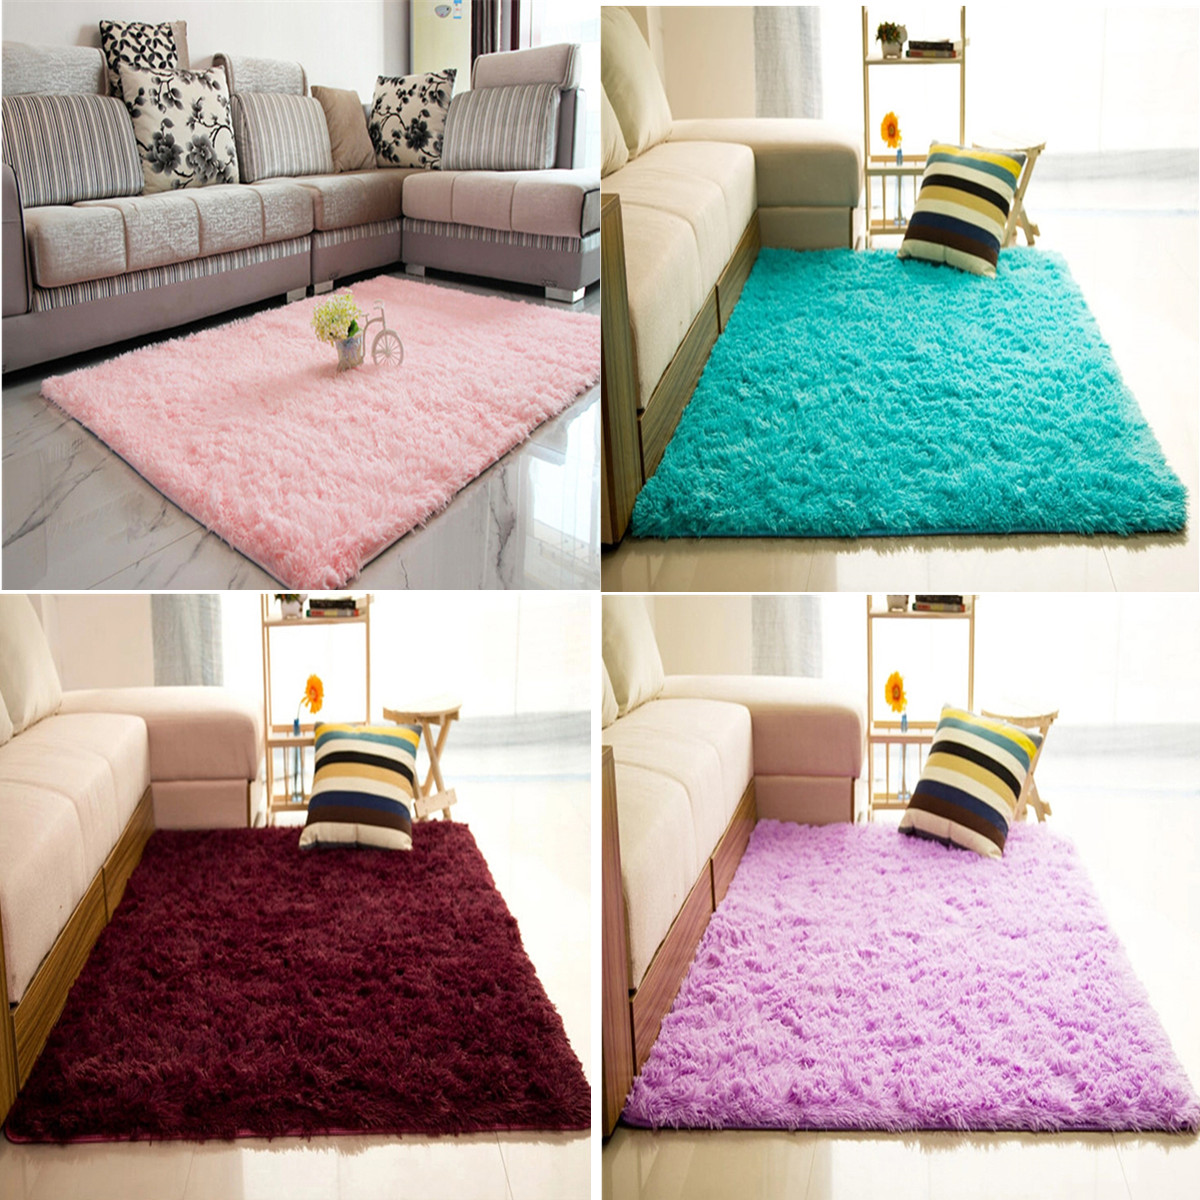 94.5''x63''(2pcs 47.2''x 31.5'') Modern Soft Fluffy Floor Rug Anti-skid Shag Shaggy Area Rug Bedroom Dining Room Carpet Yoga Mat Child Play Mat